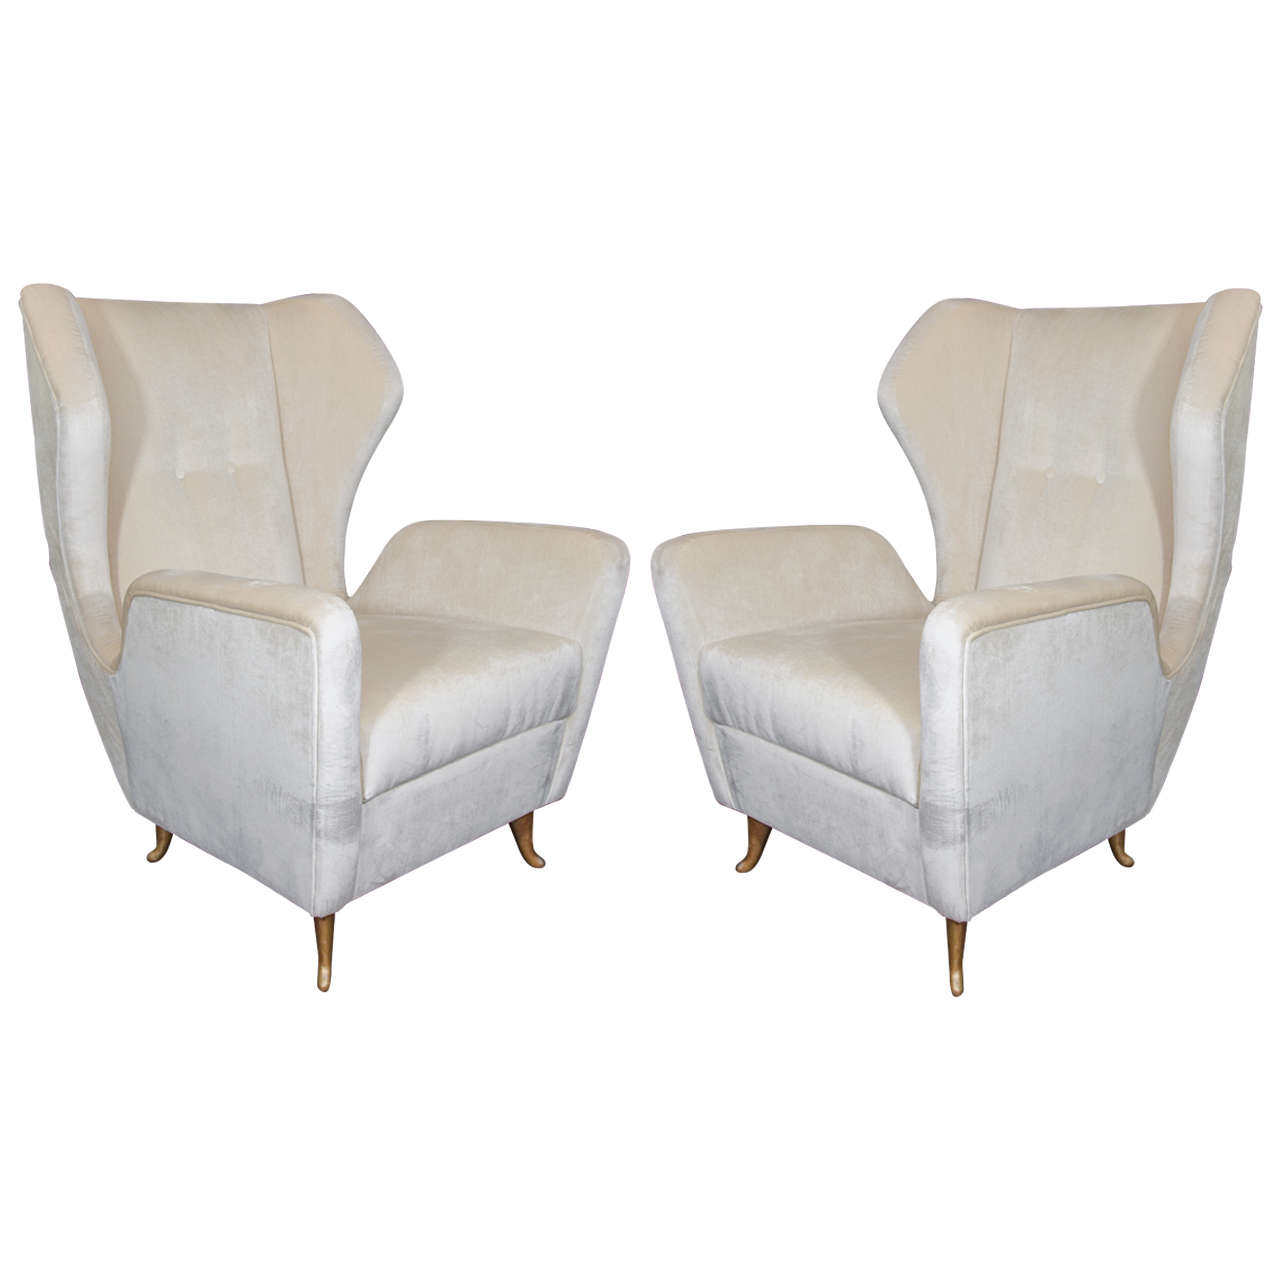 reupholster sofa nyc ikea white stunning pair of gio ponte style chairs reupholstered in